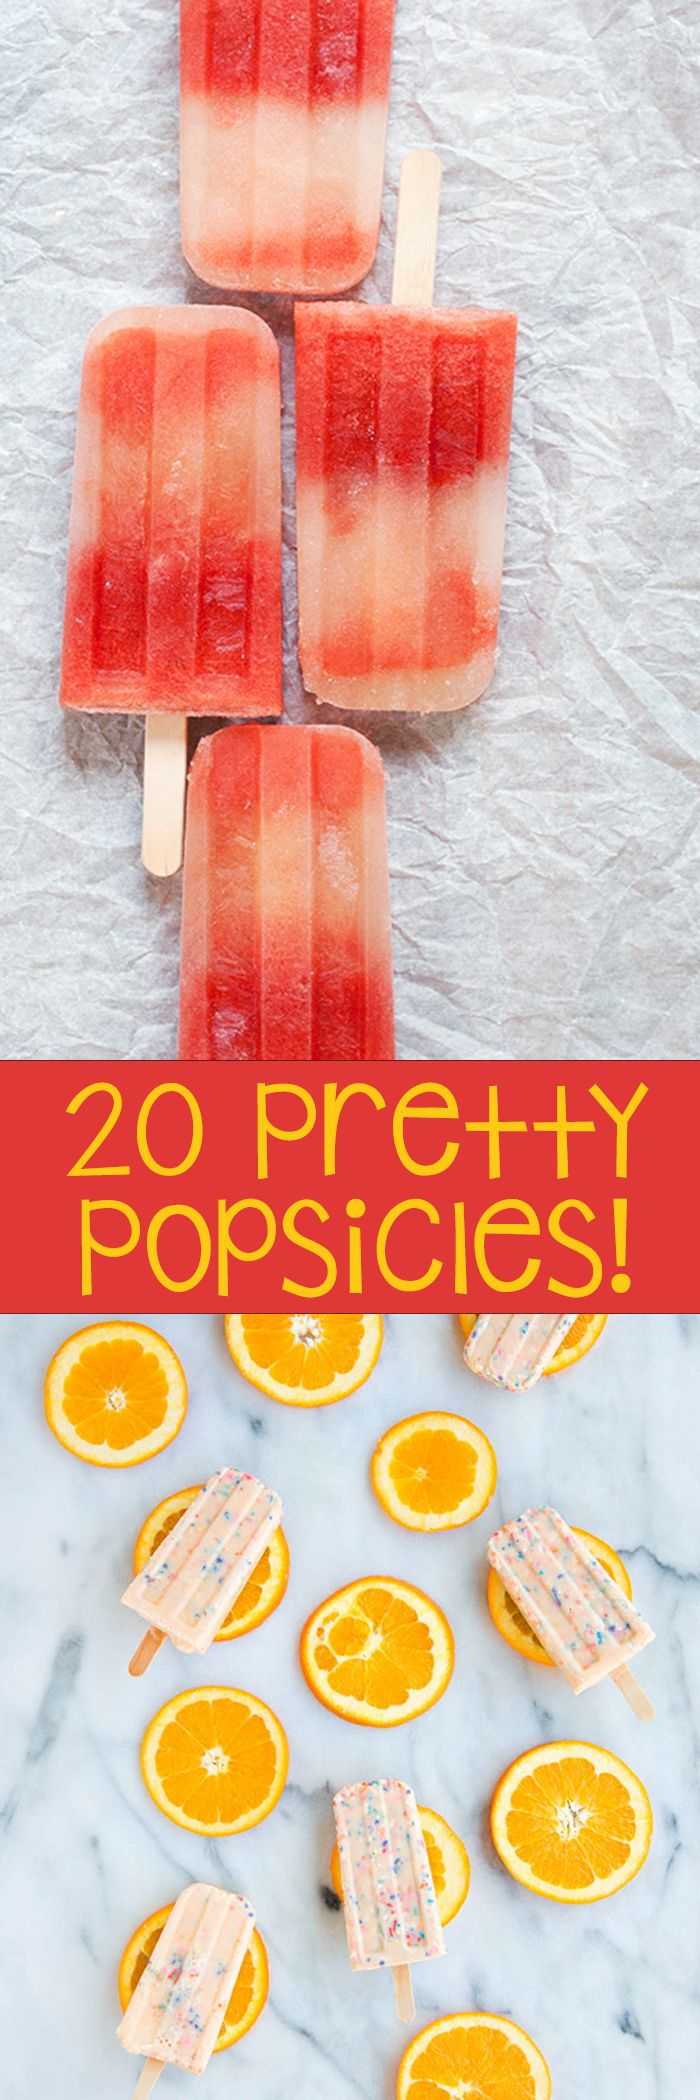 20 pretty popcicle recipes -- pin to try this summer!!